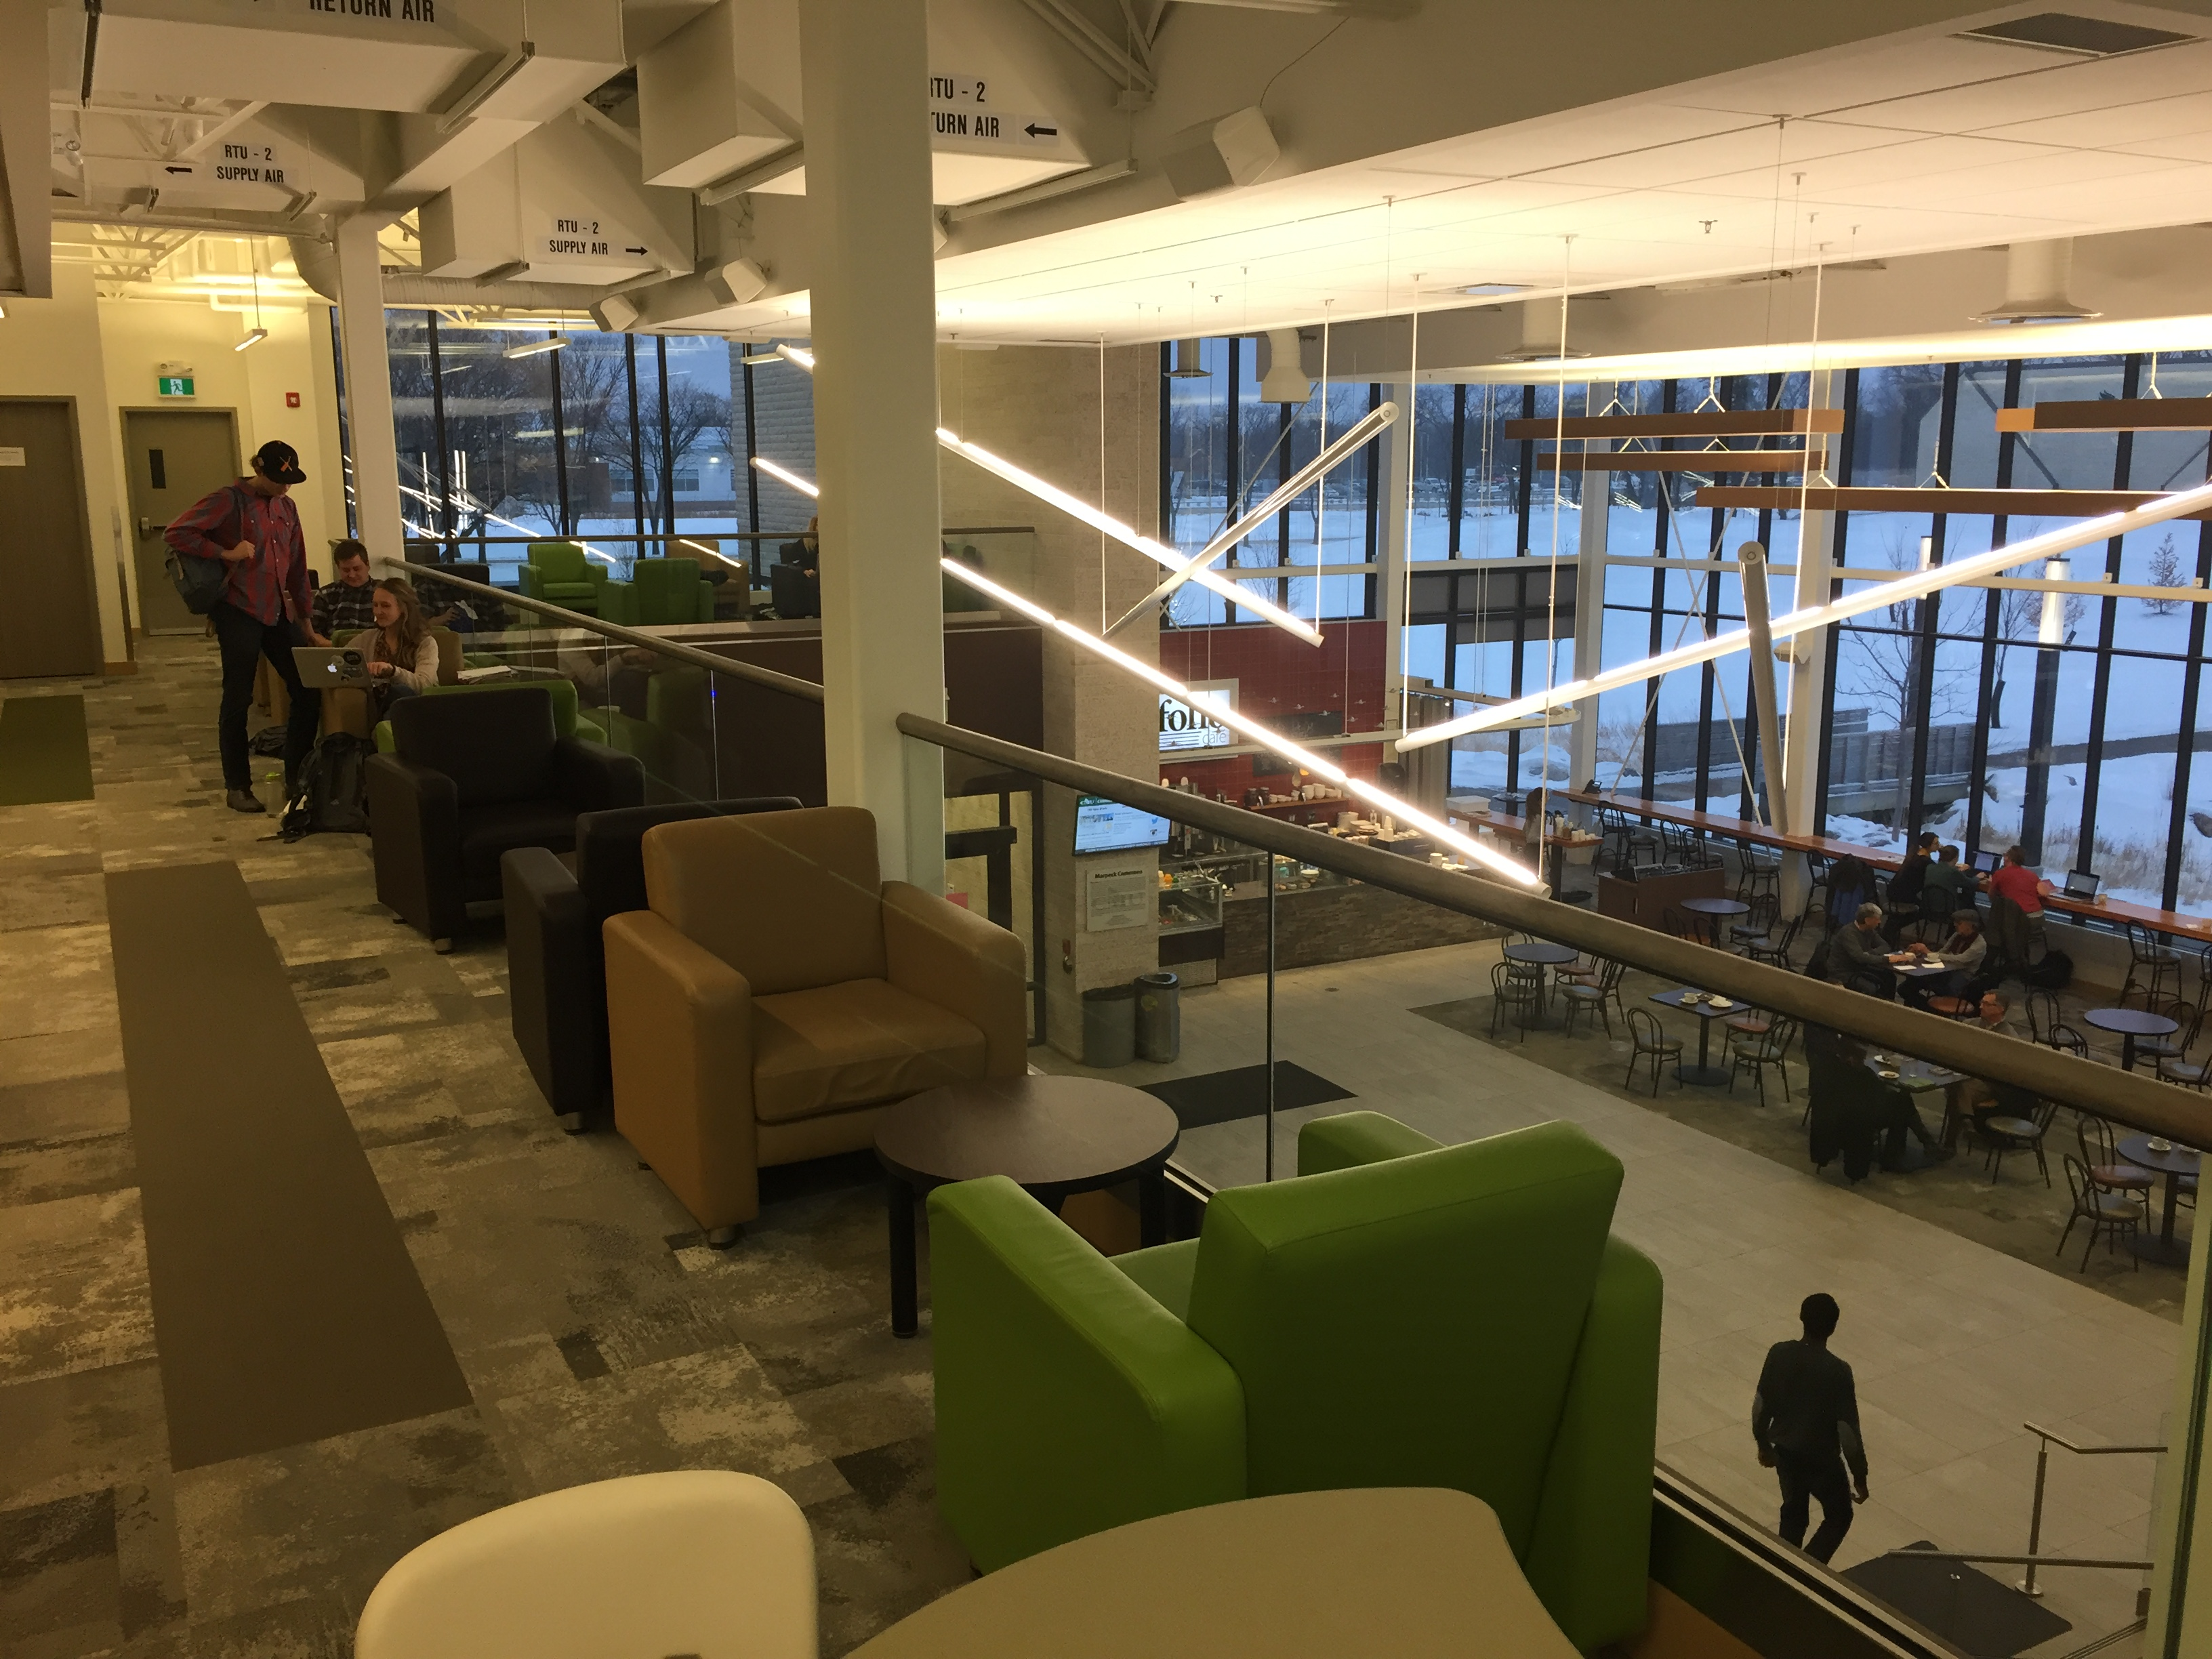 Folio Cafe and the Mezzanine - The Pros and Cons of CMU's Many Study Spaces